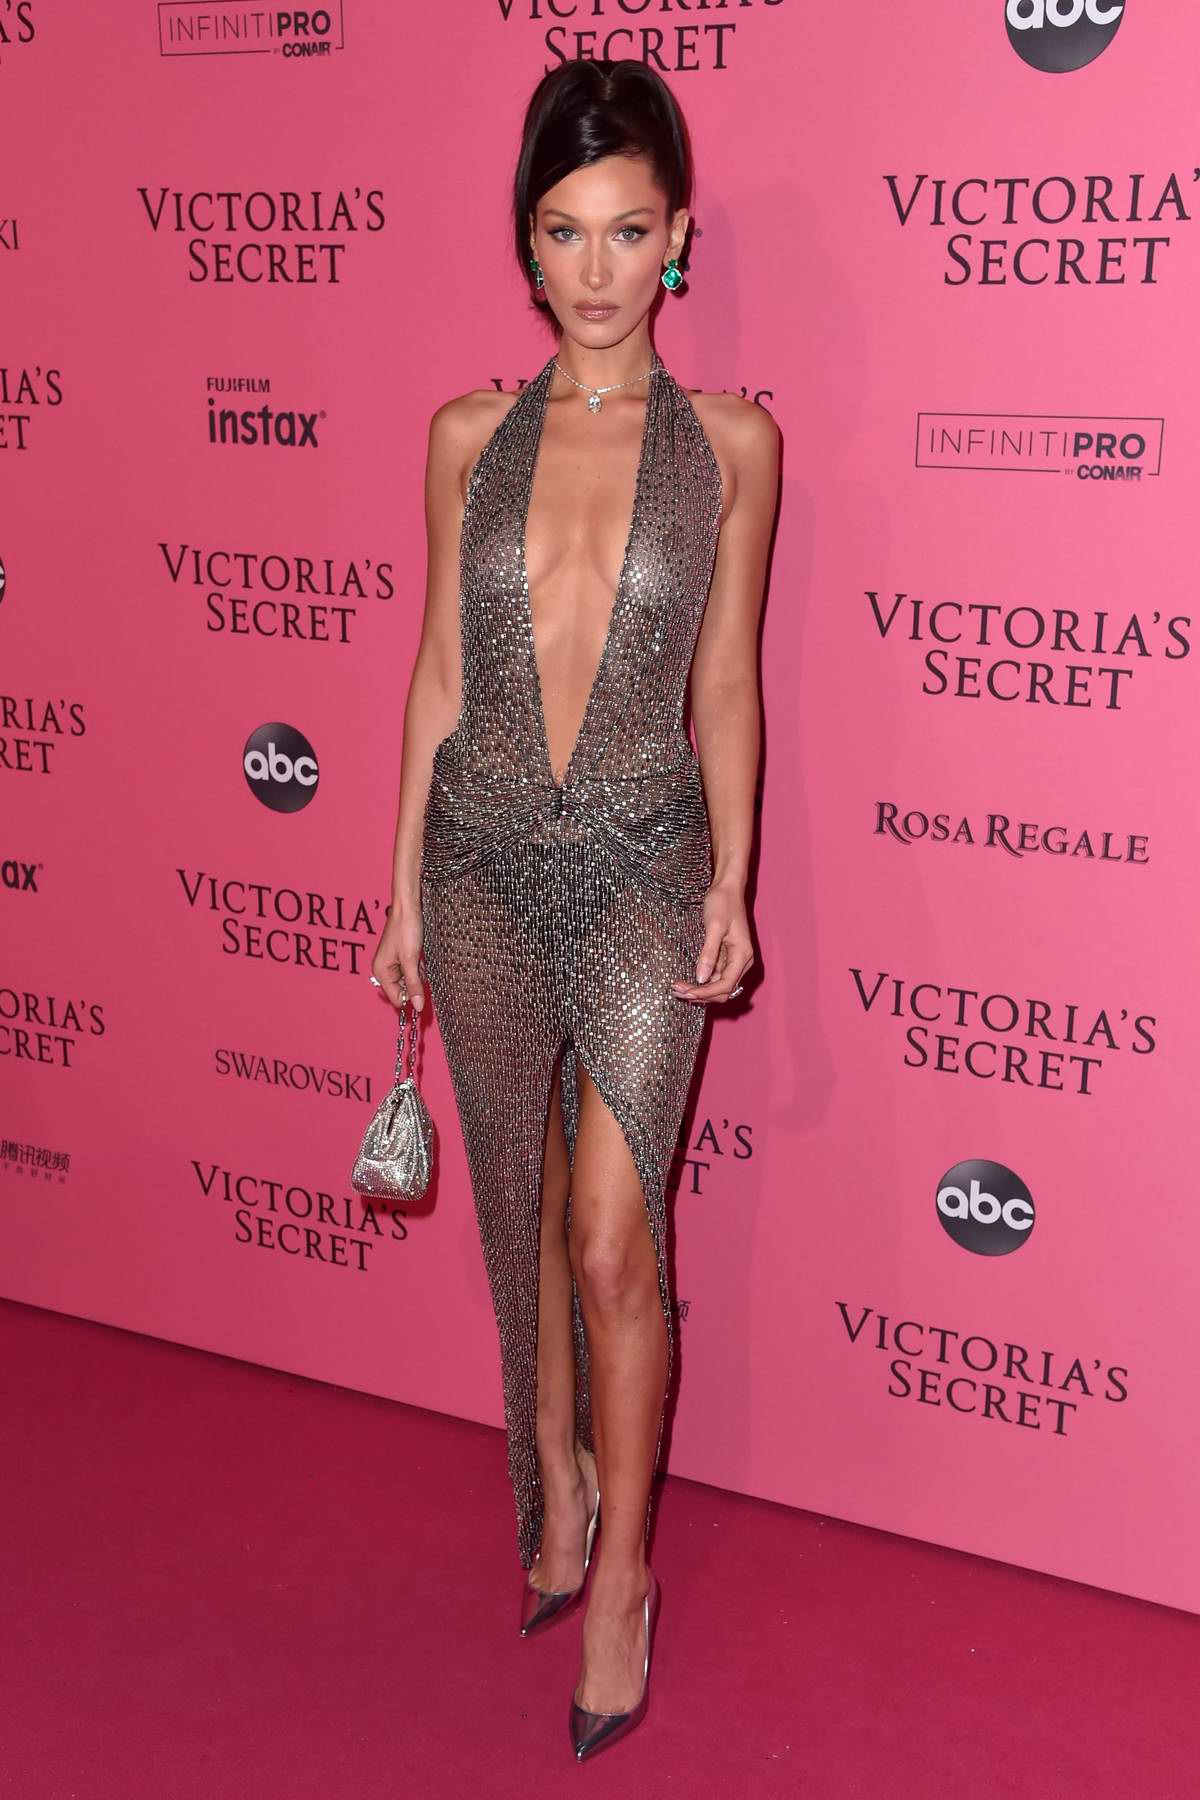 Bella Hadid attends the 2018 Victoria's Secret Fashion Show After-Party in New York City